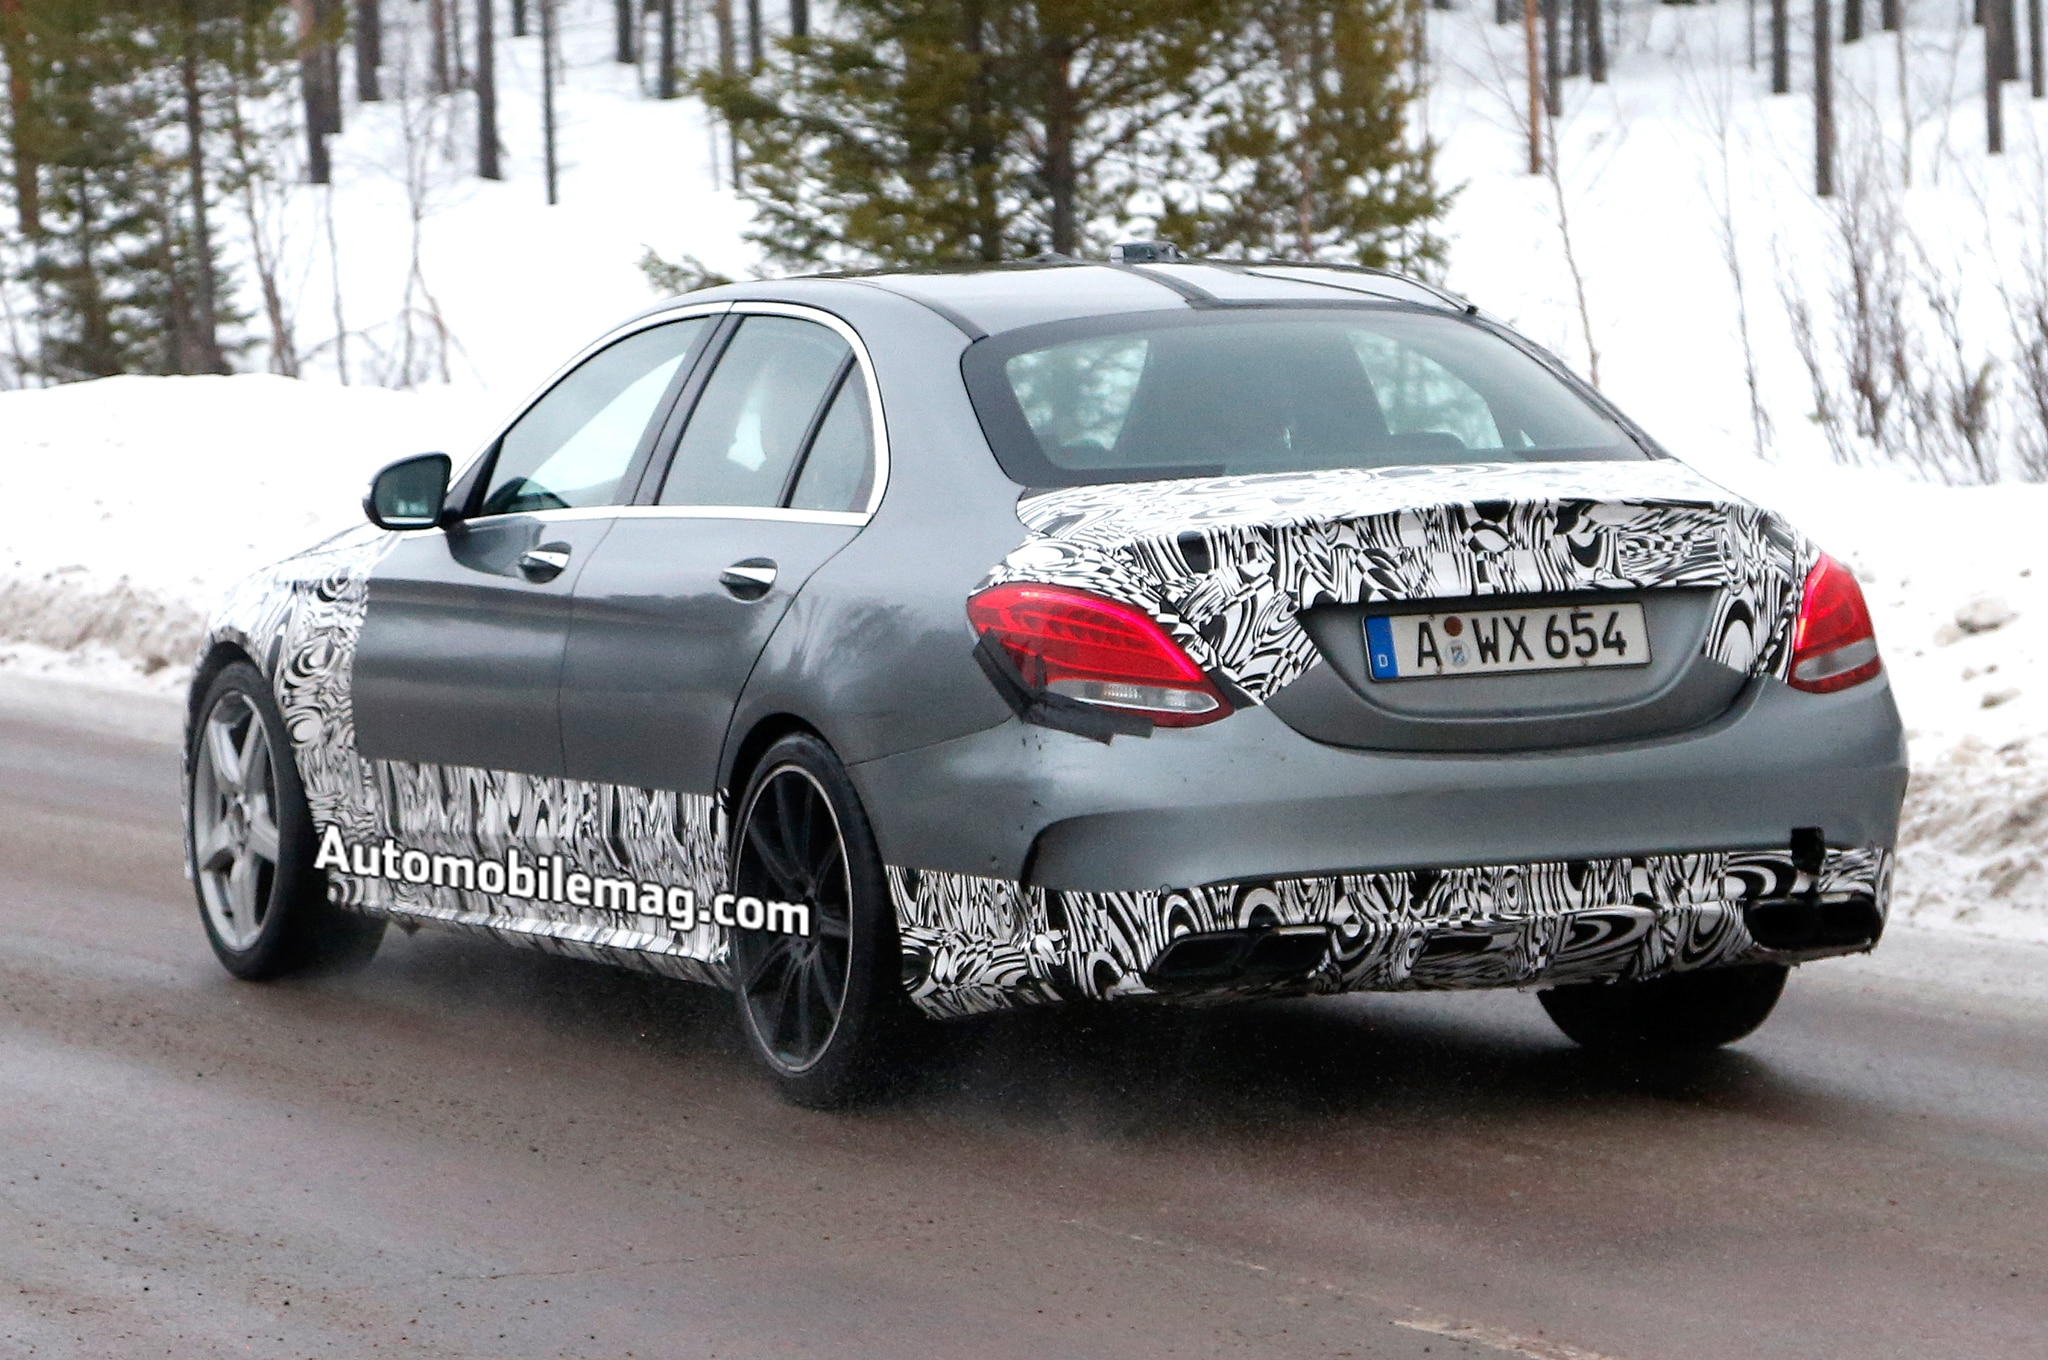 2015 mercedes benz c63 amg spied in sweden automobile for 2015 amg c63 mercedes benz